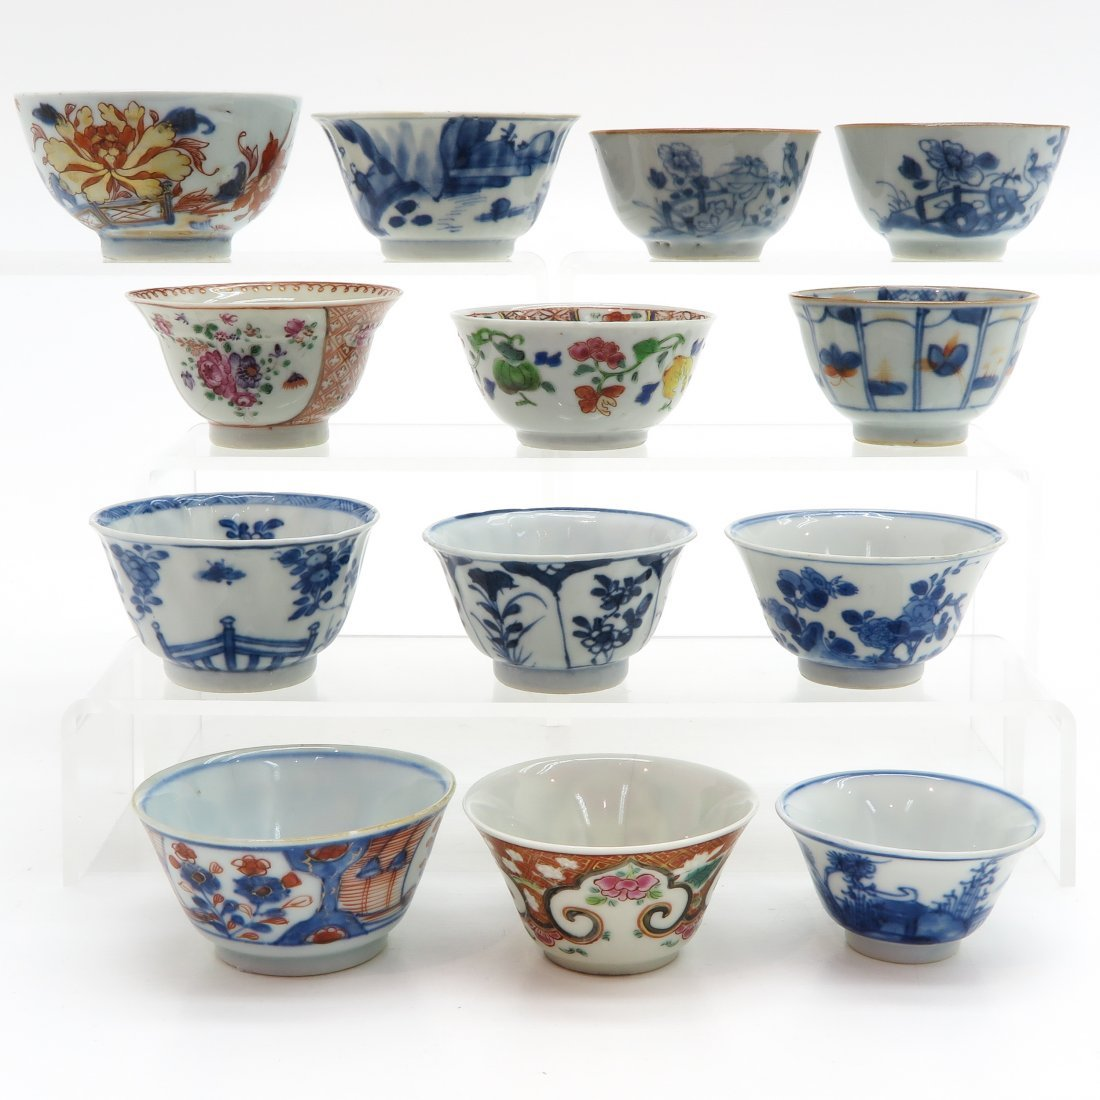 Diverse Lot of China Porcelain Cups